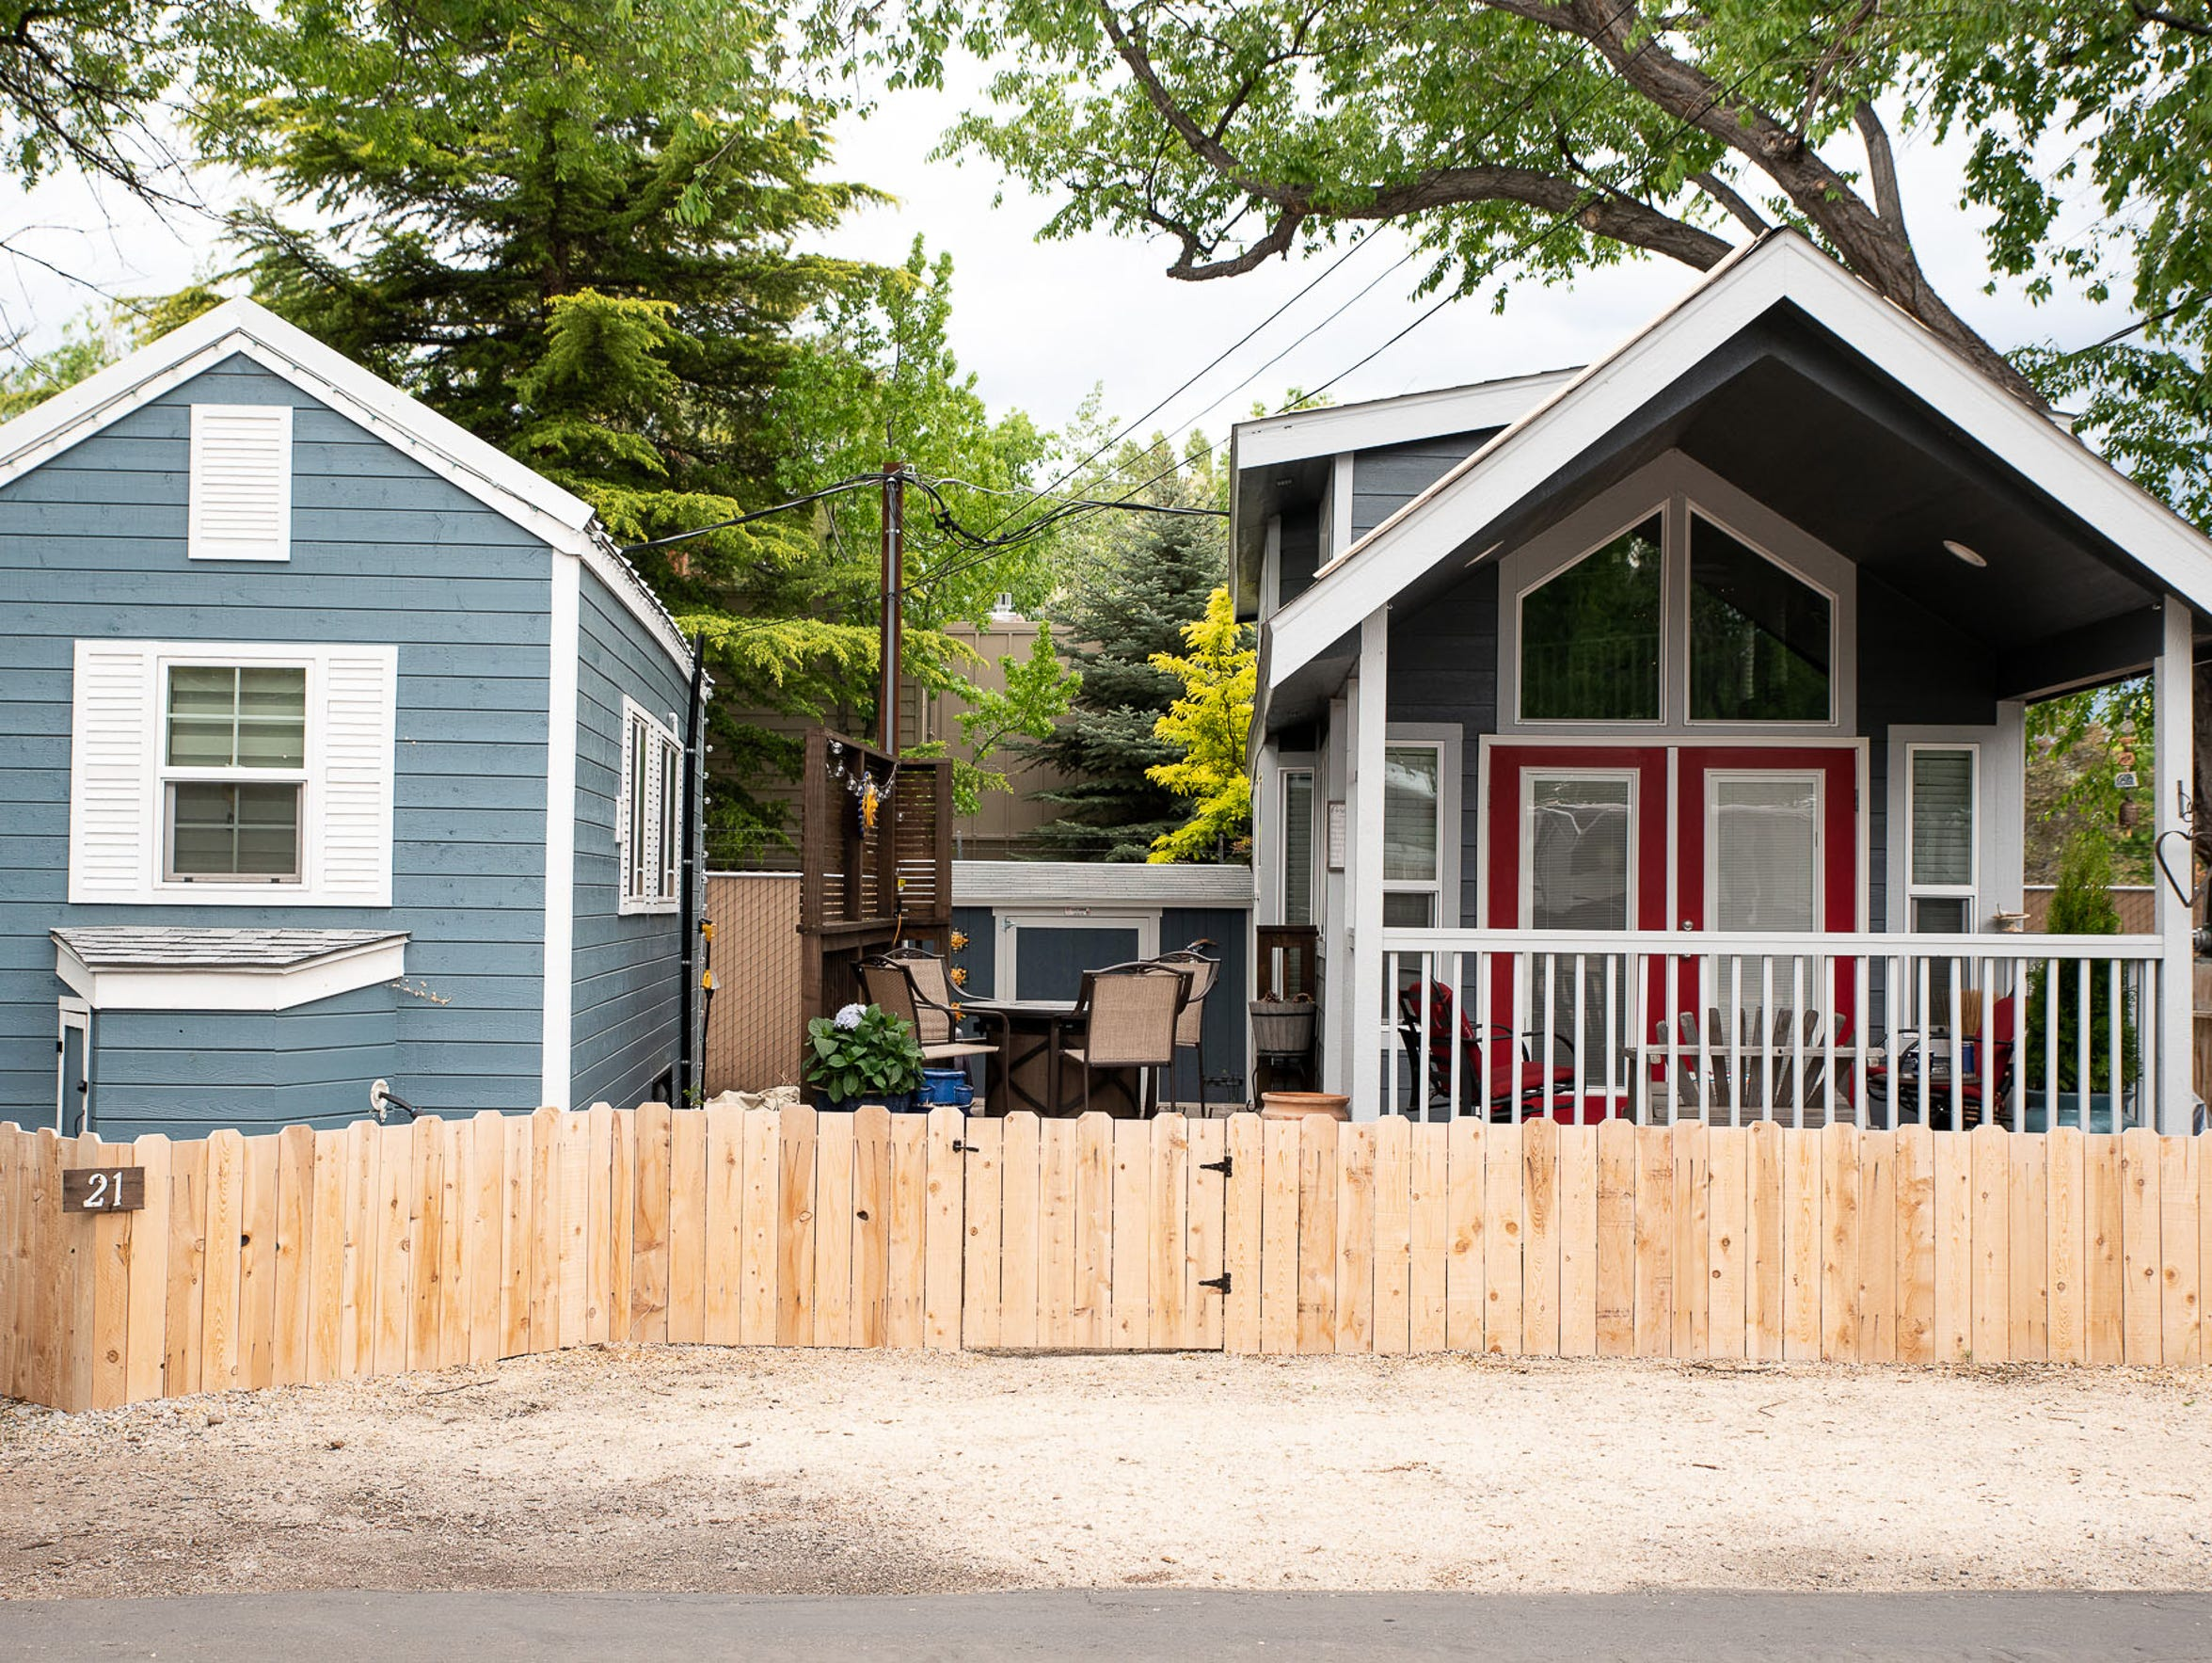 Two tiny-house style trailers sit side by side at the